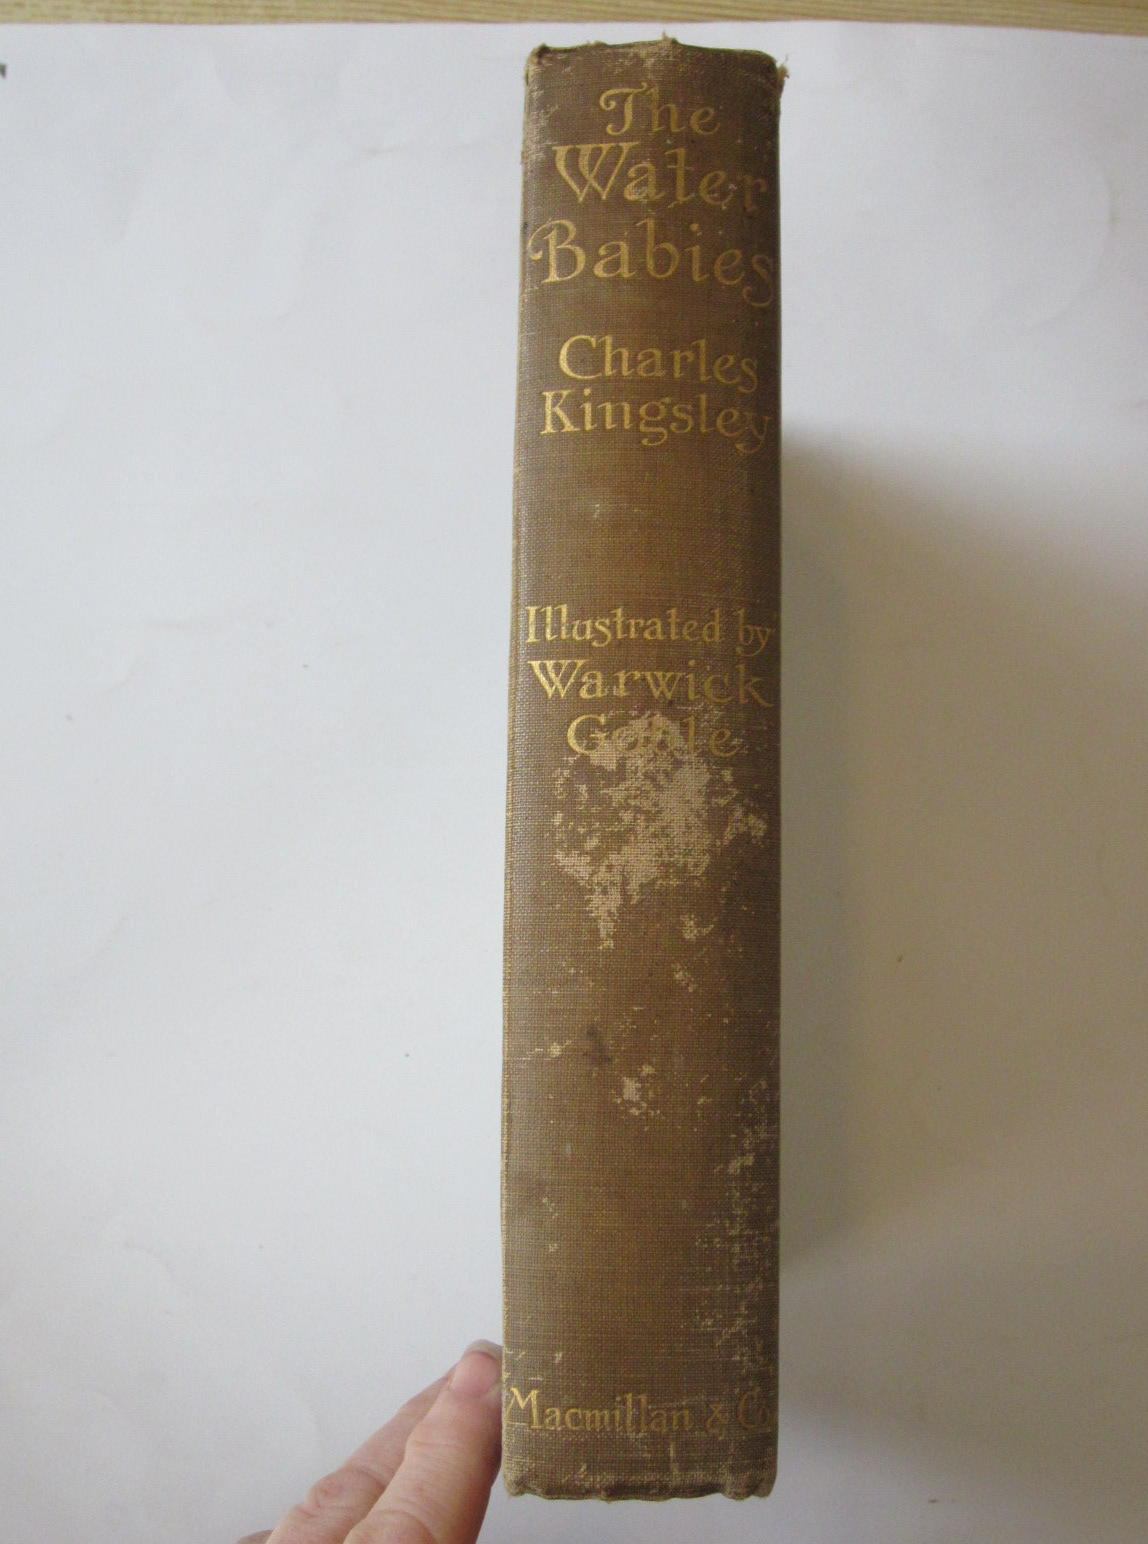 Photo of THE WATER-BABIES written by Kingsley, Charles illustrated by Goble, Warwick published by Macmillan & Co. Ltd. (STOCK CODE: 1308324)  for sale by Stella & Rose's Books